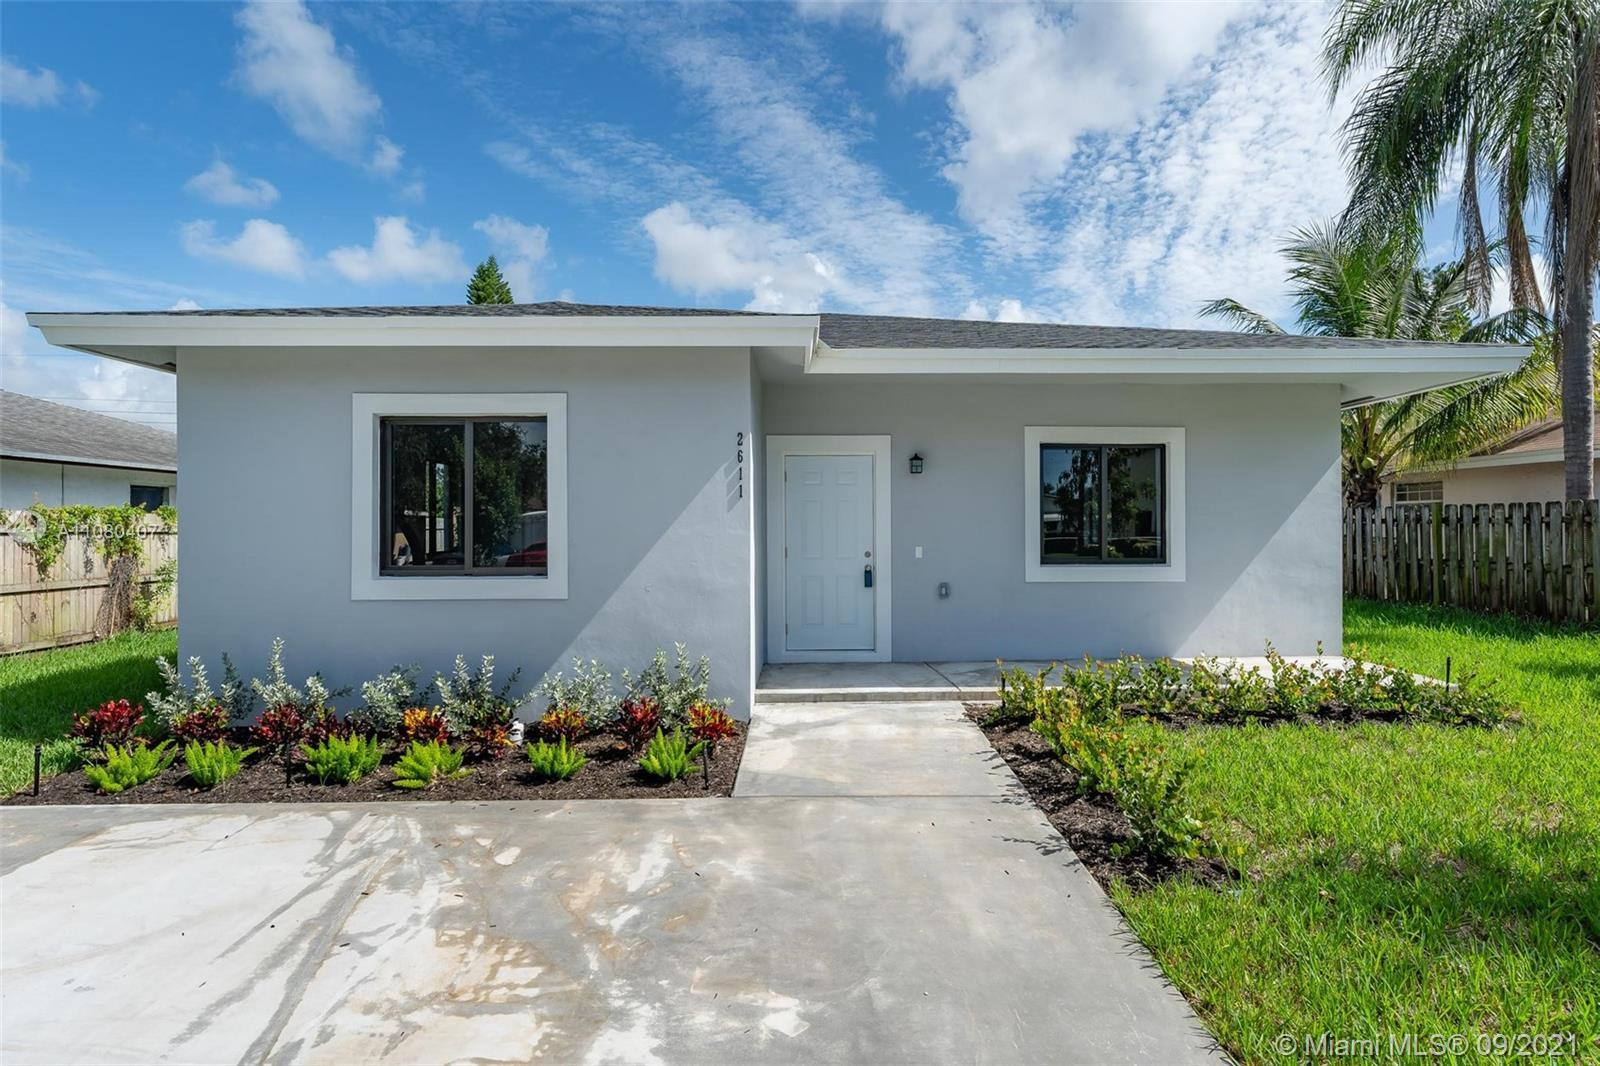 BRAND NEW CONSTRUCTION. 4 bedroom 2 bathroom Single family home in Fort Lauderdale is READY for you